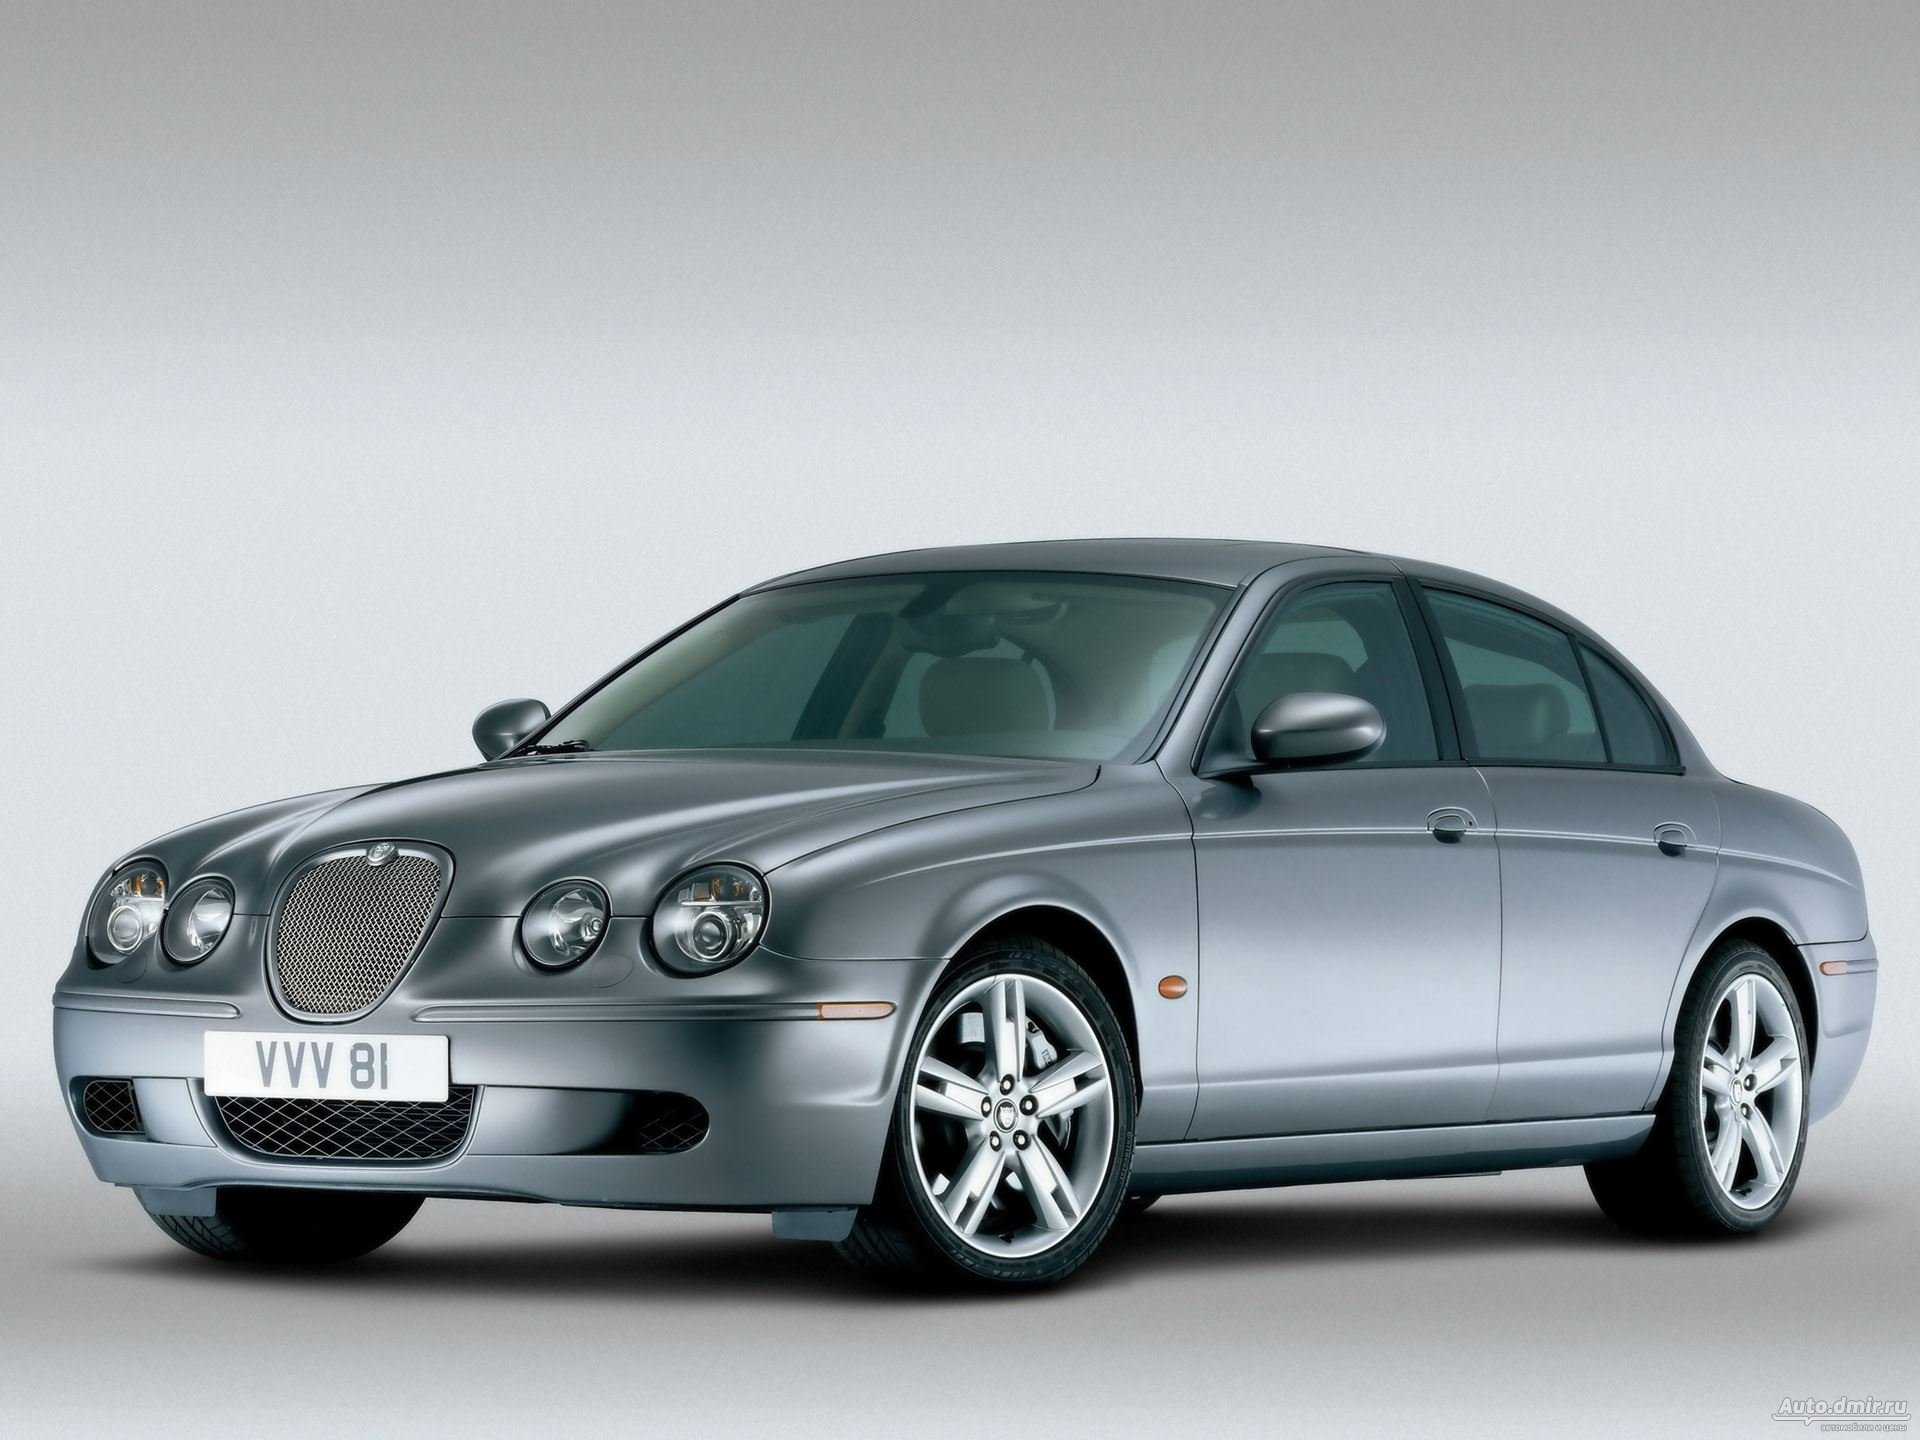 Cars jaguar s-type (ccx) 2007